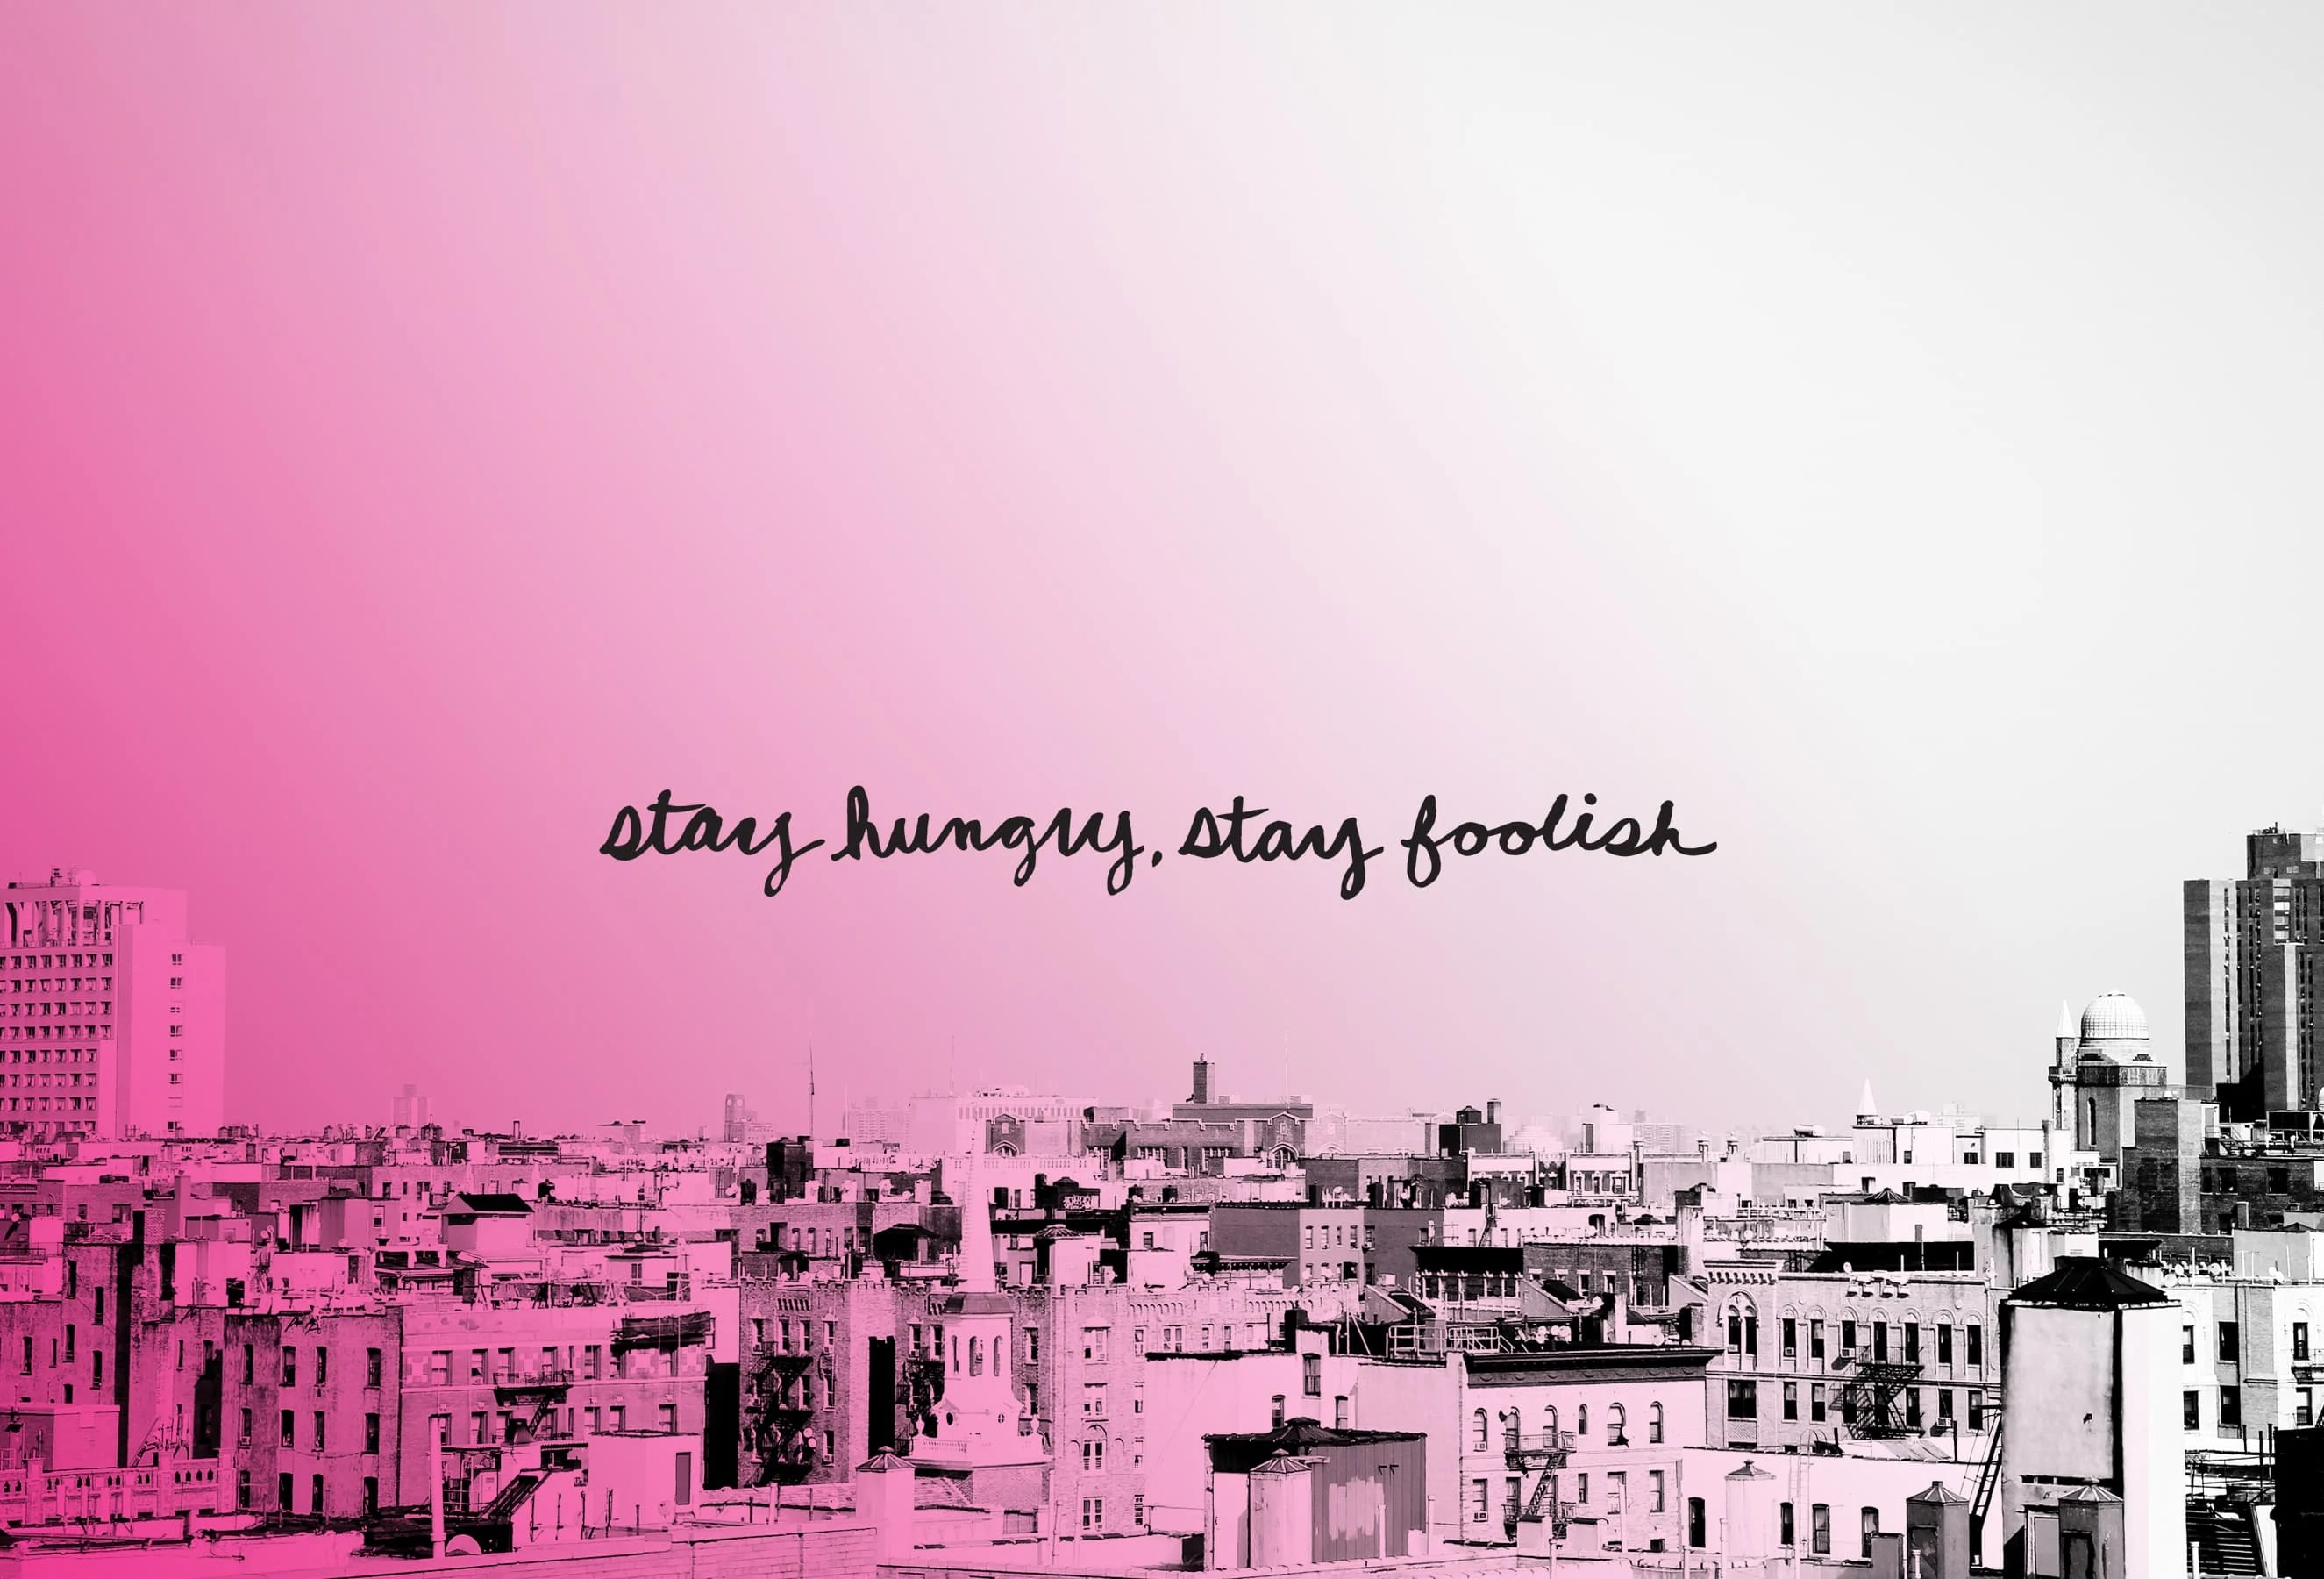 Trendy Quote Wallpapers For Computor Desktop Designers Ciera Holzenthal Lovely Indeed